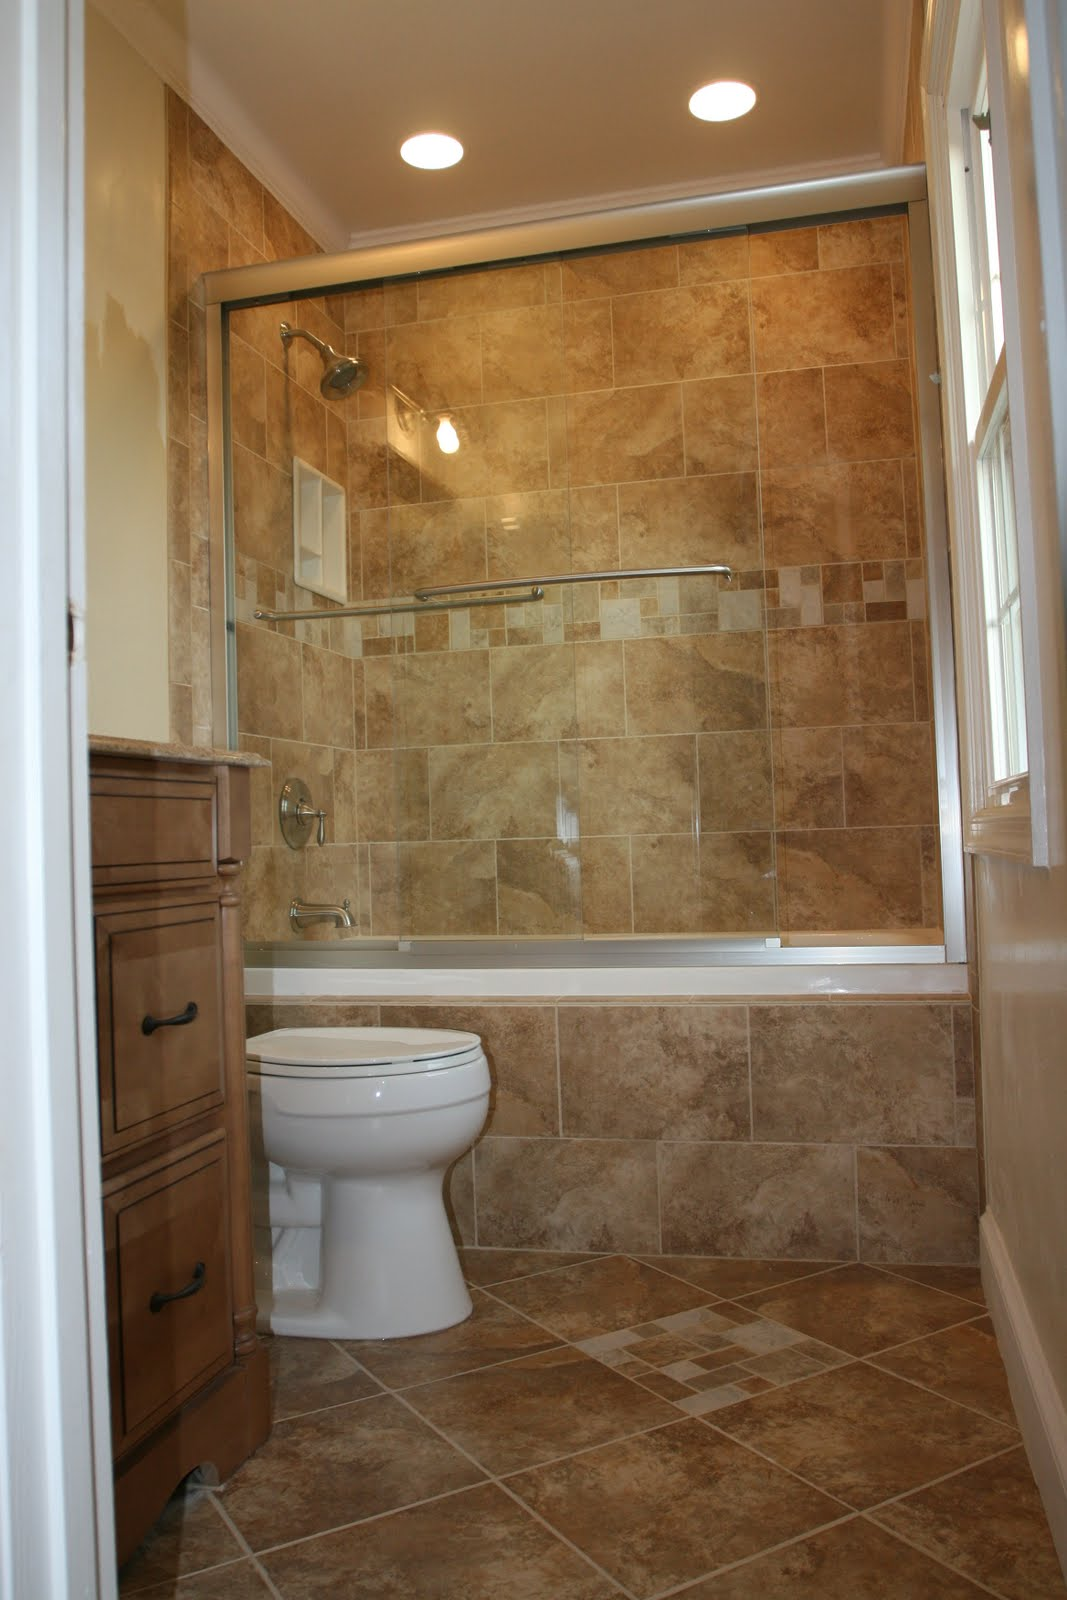 Bathroom Gallery Tiles : Bathroom remodeling design ideas tile shower niches